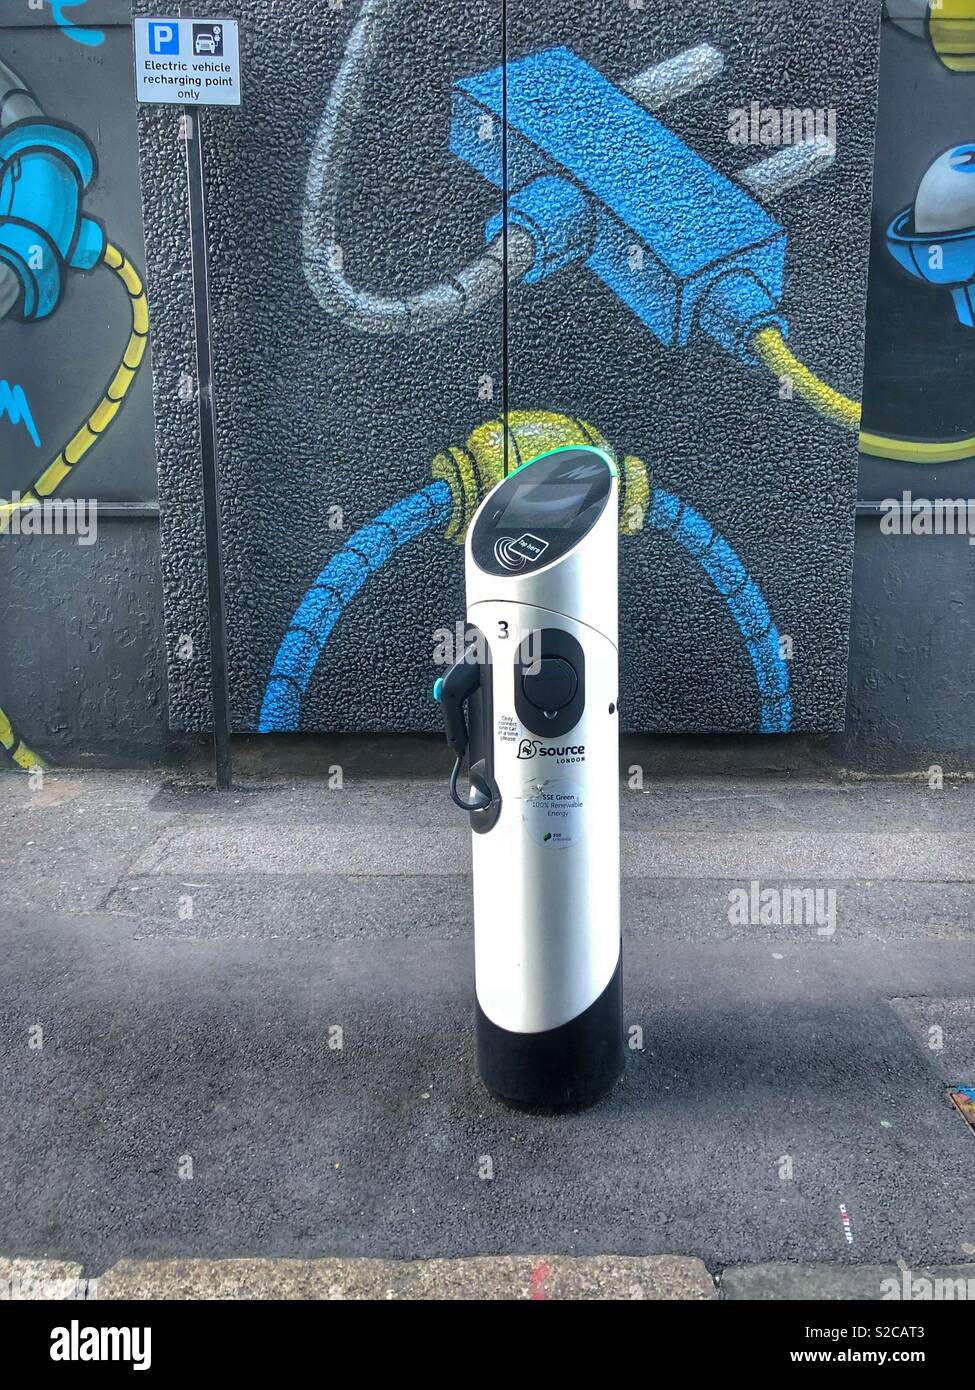 Electric car charger on pavement in shoreditch, east London, Britain. In front of street art mural. No people. Stock Photo